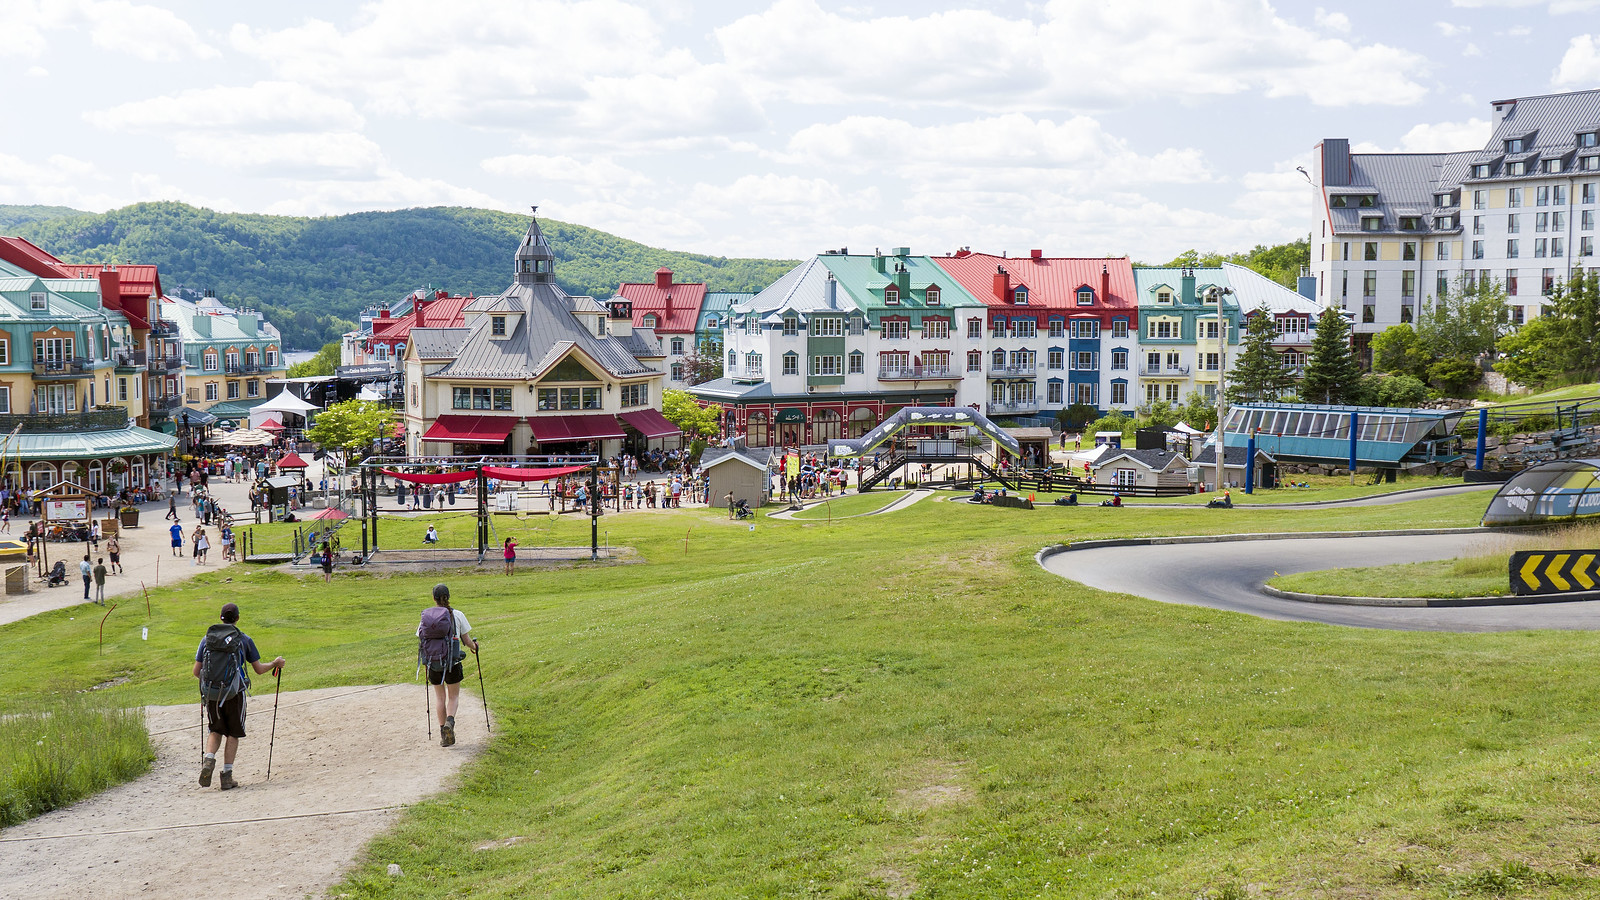 Reasons to Attend the Mont Tremblant Blues Festival - Quebec, Canada